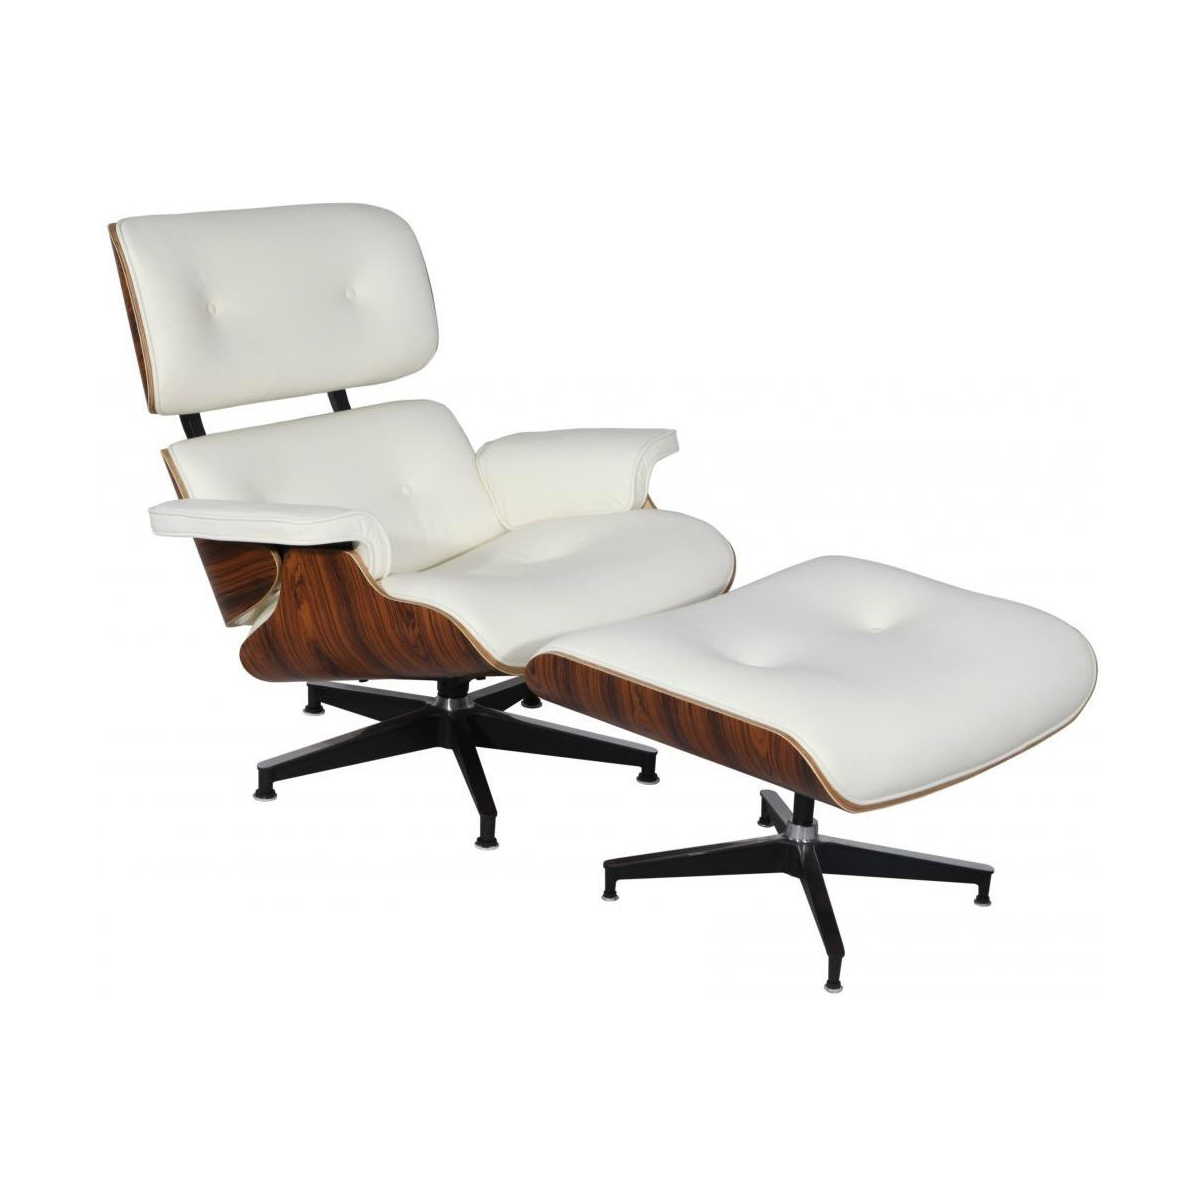 eMod - Mid Century Eames Style Lounge Chair & Ottoman Replica Italian Leather White Palisander